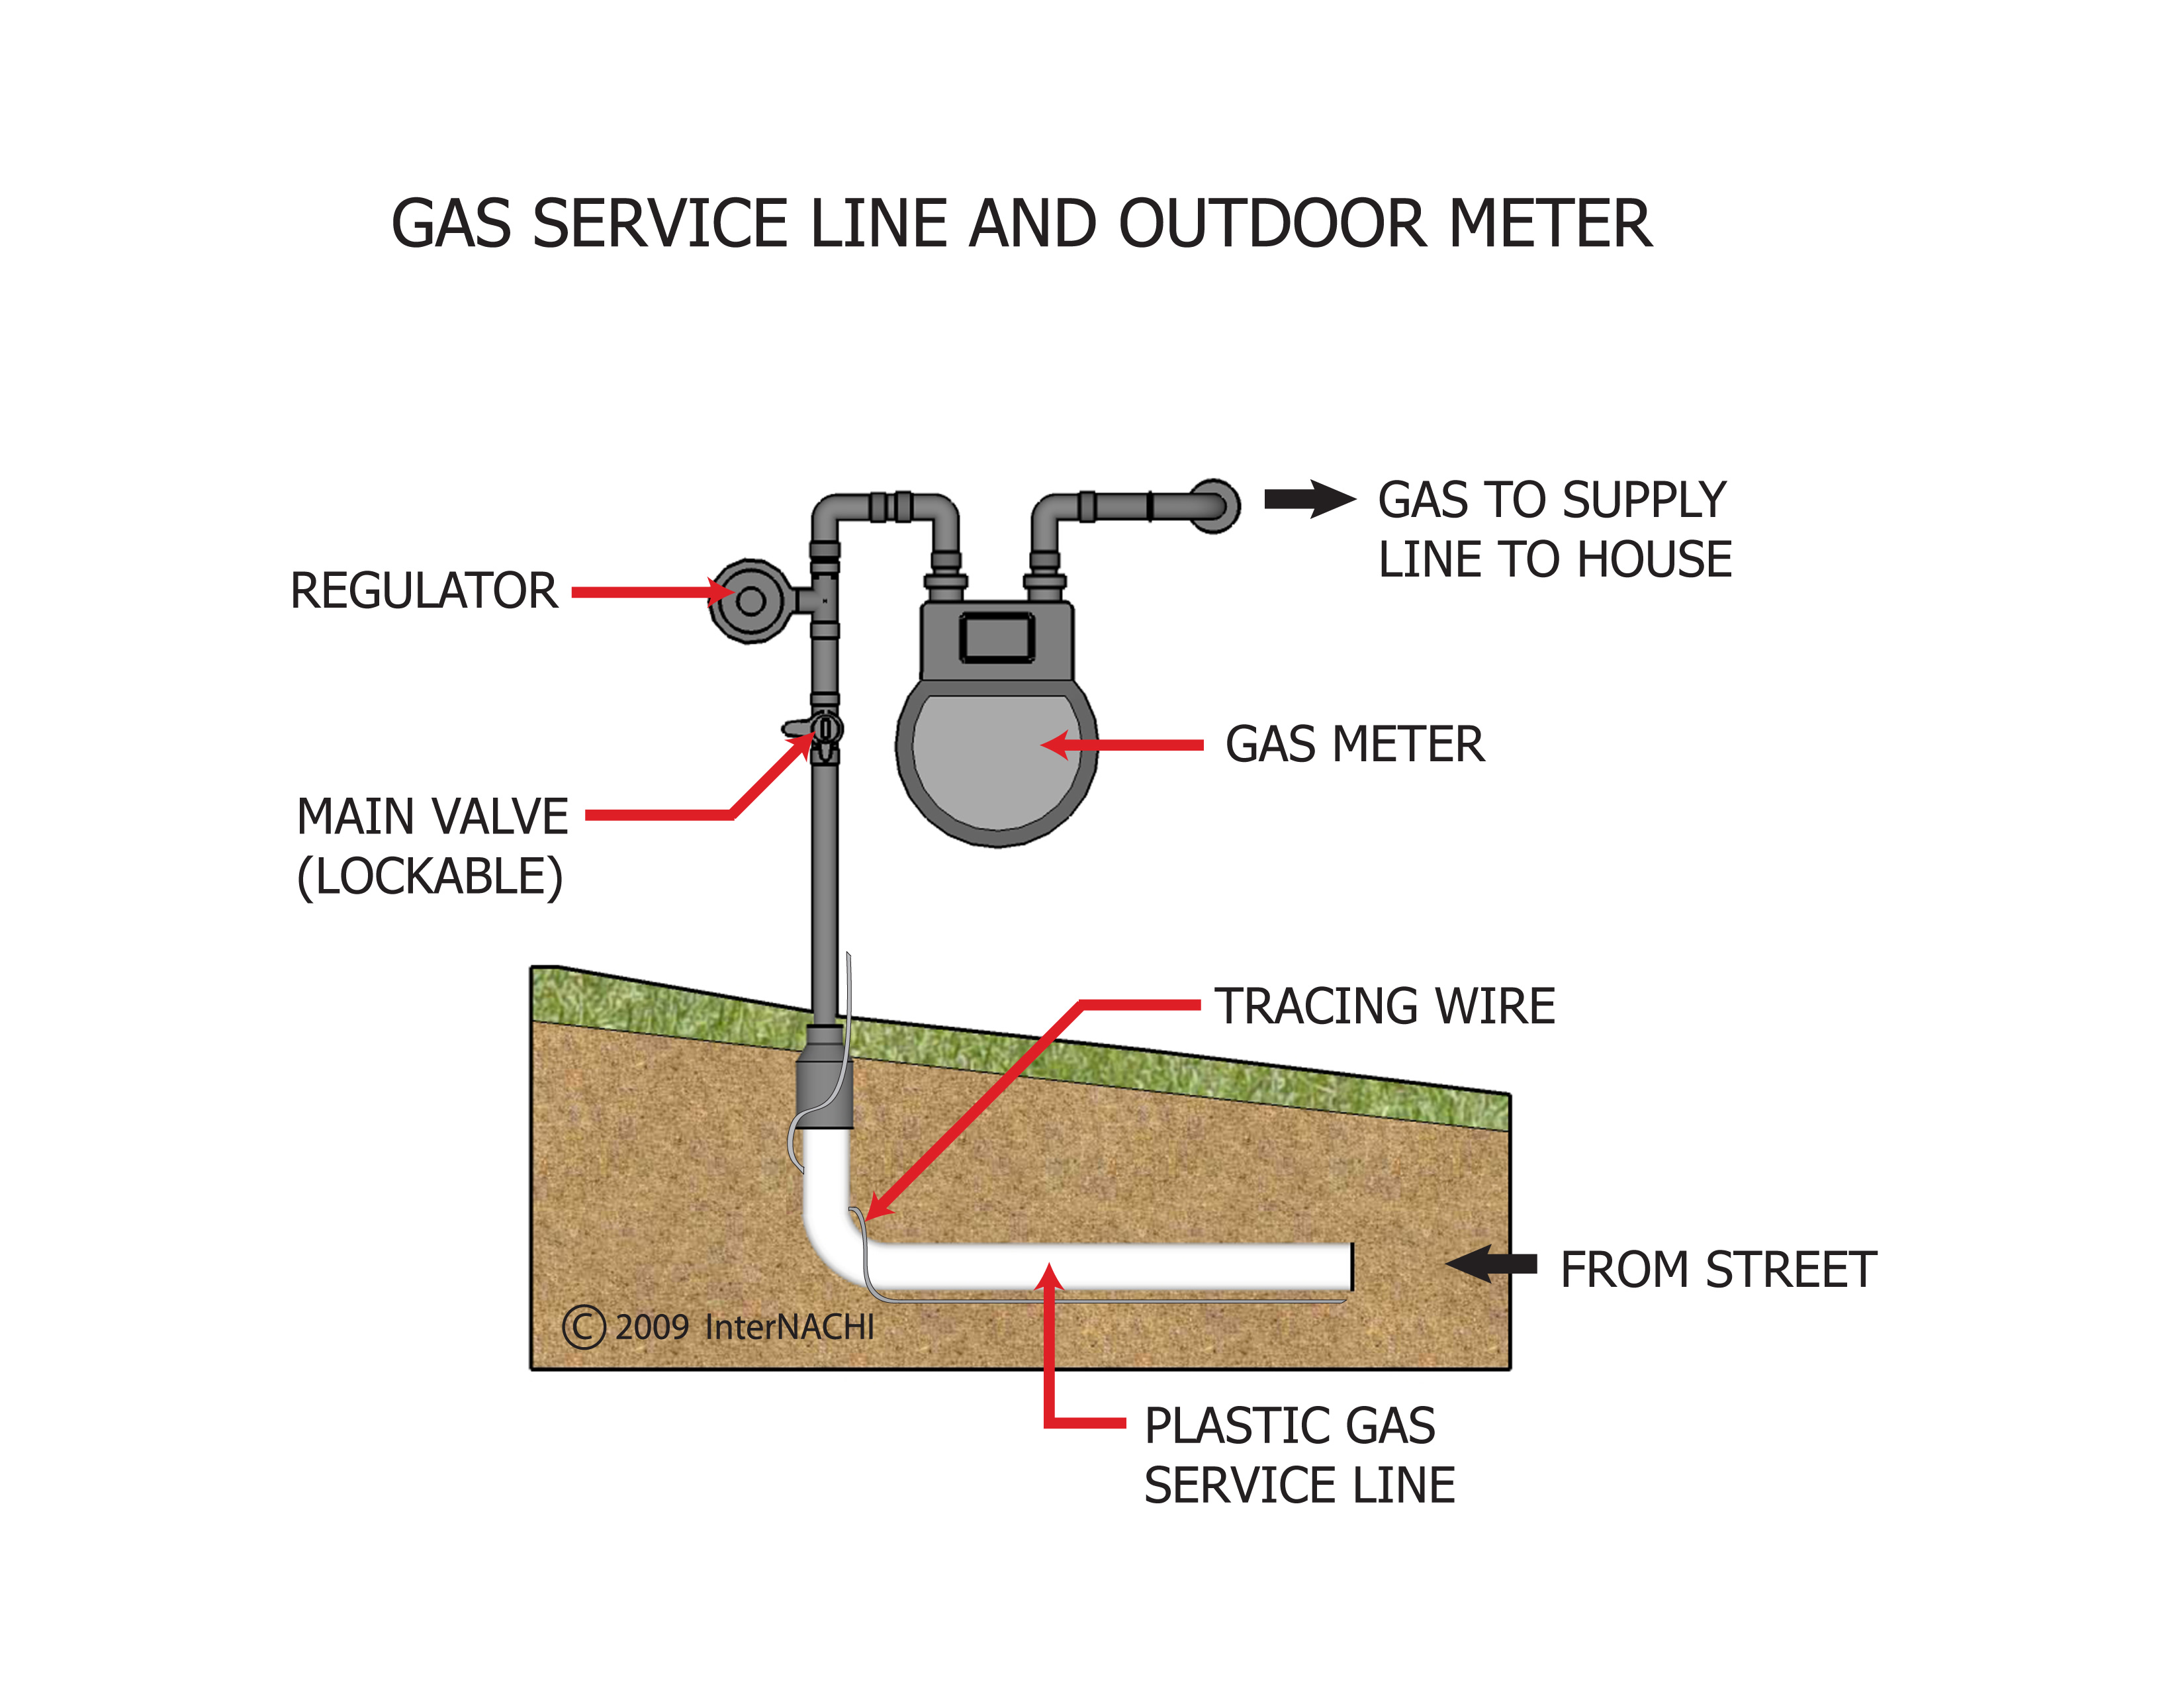 Gas service line and outdoor meter.